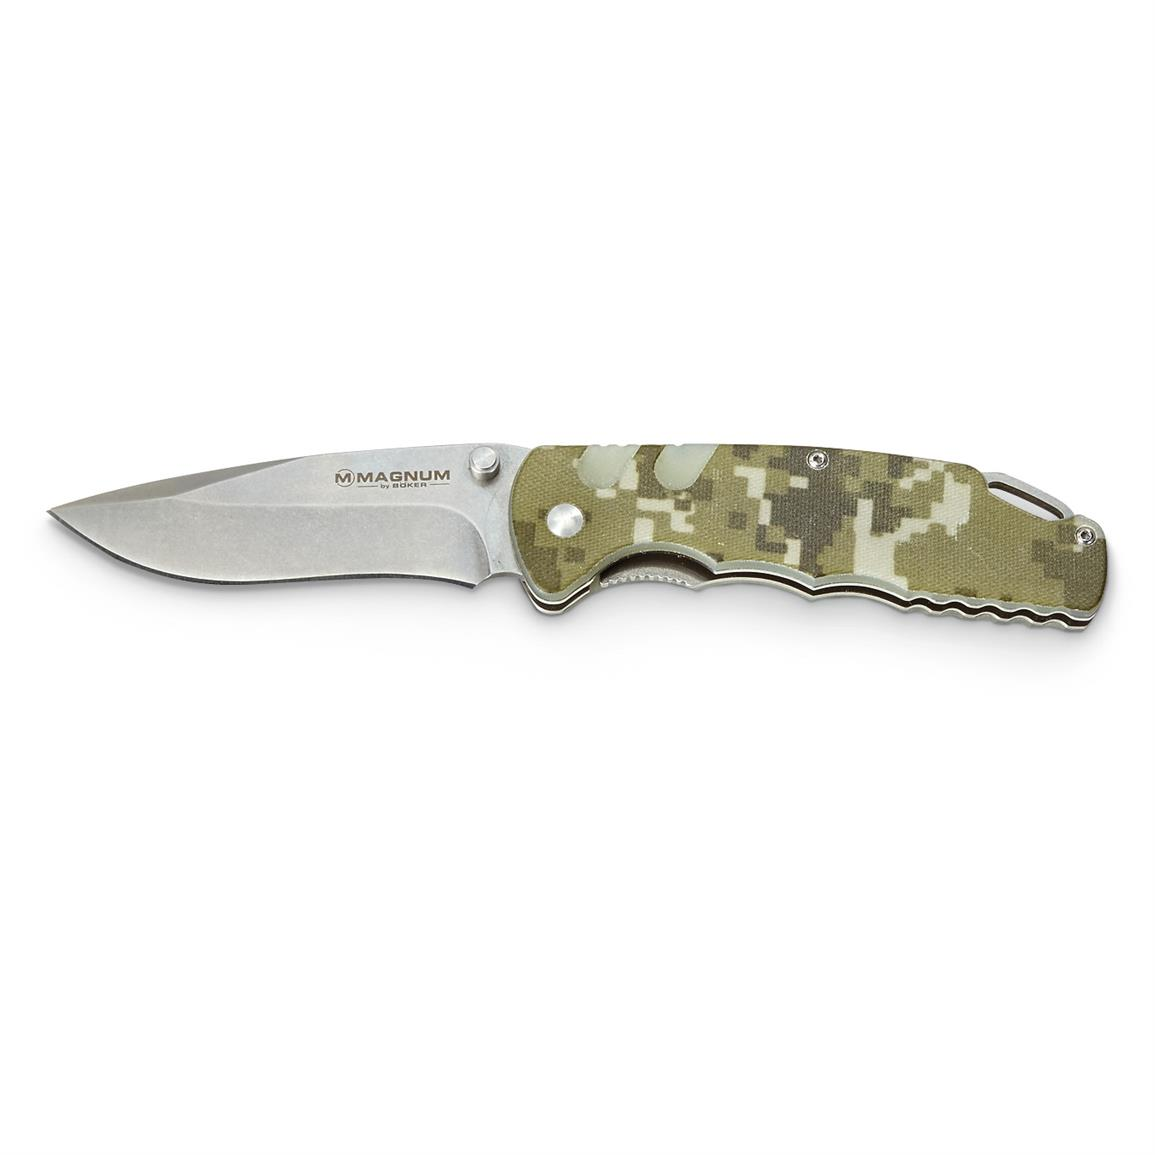 Magnum by Boker ACU Folding Knife